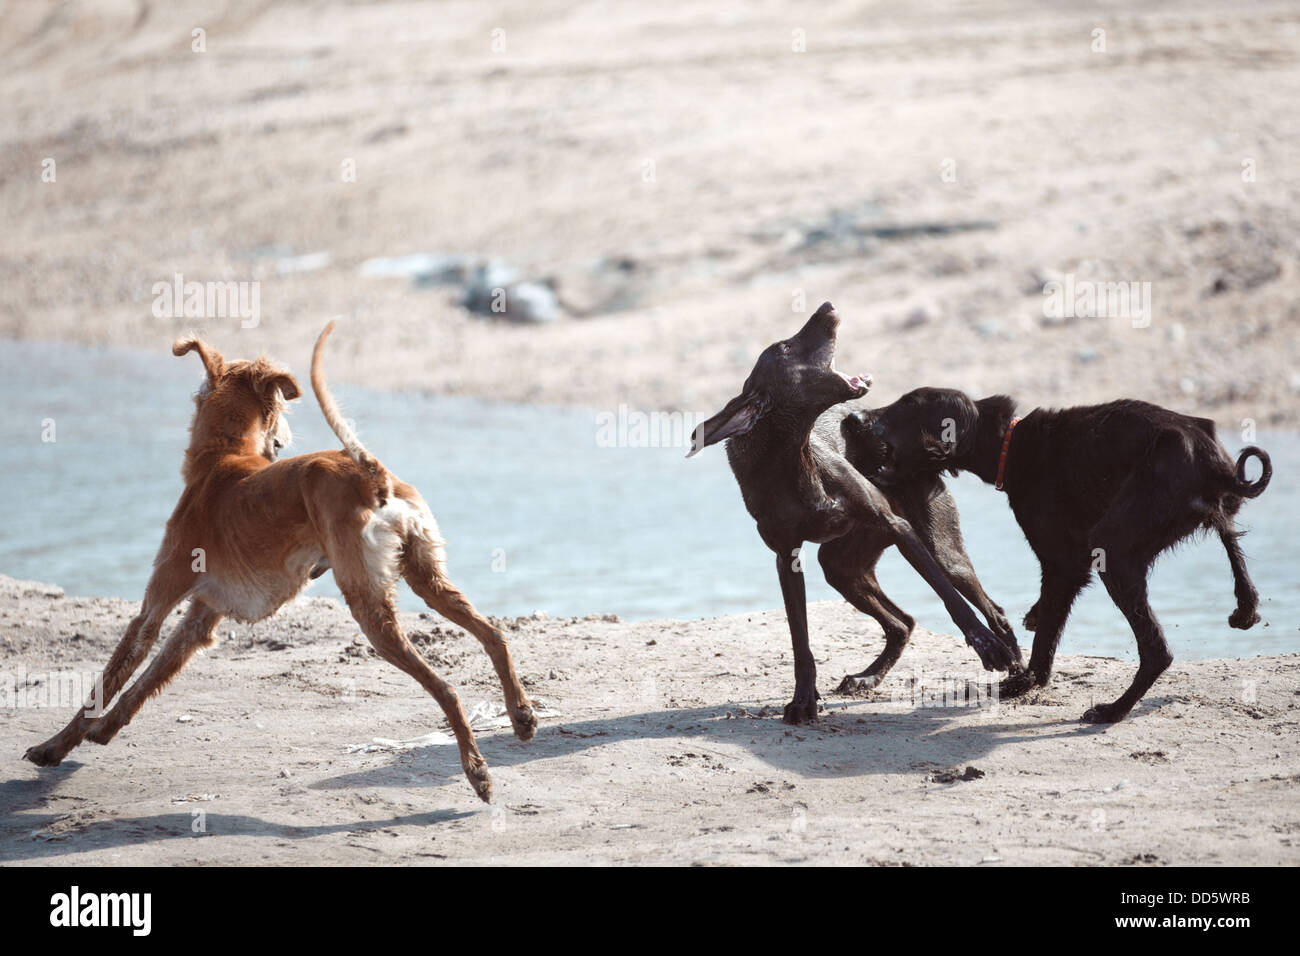 Three dogs fighting outdoors - Stock Image